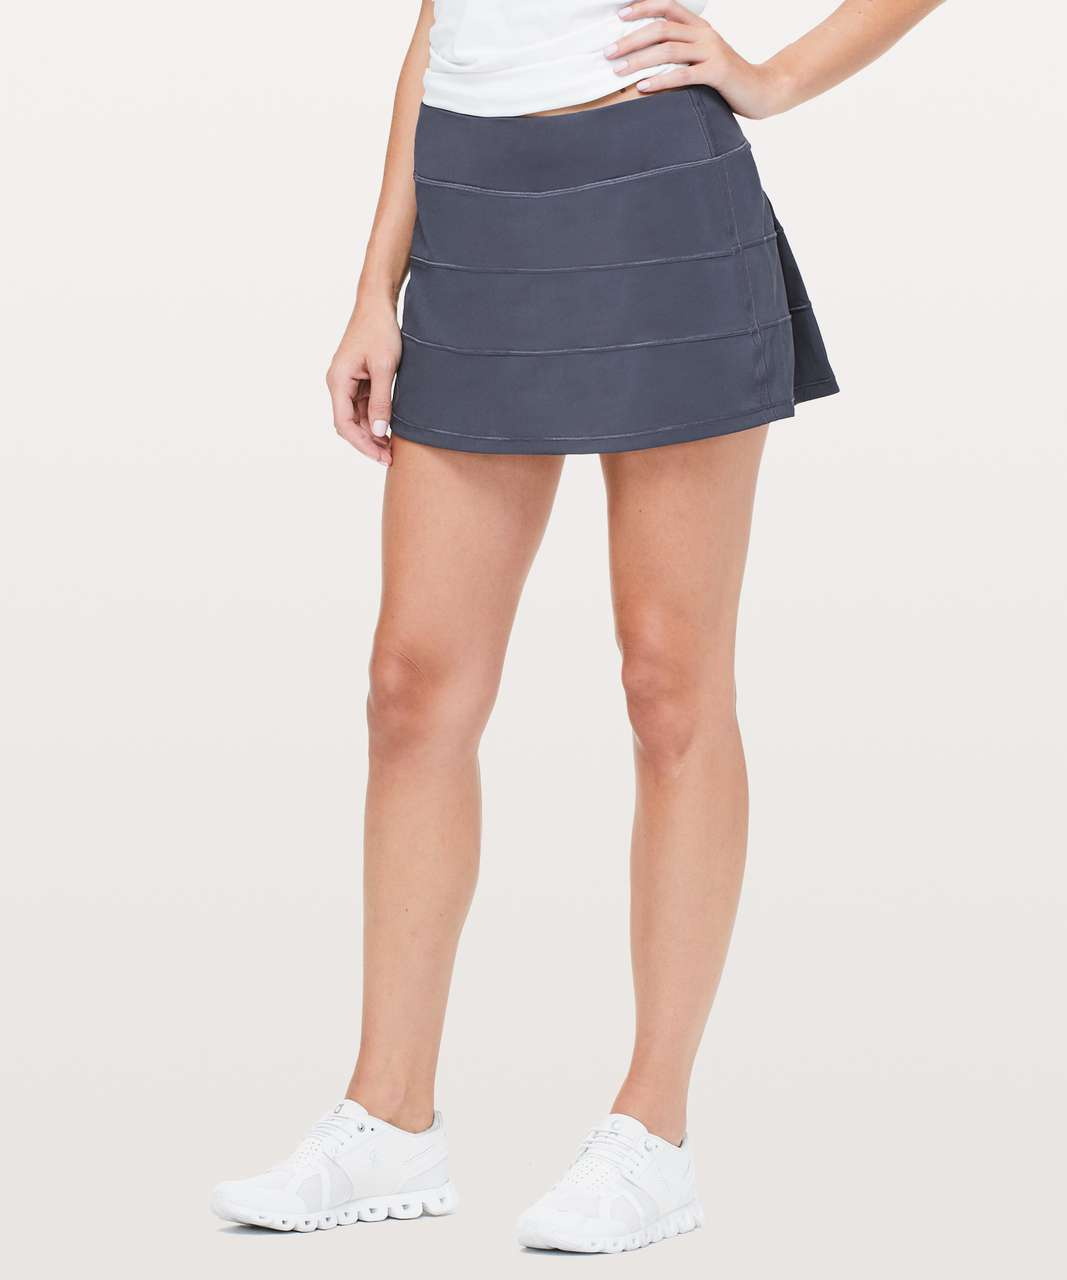 "Lululemon Pace Rival Skirt (Regular) *4-way Stretch 13"" - Cadet Blue"